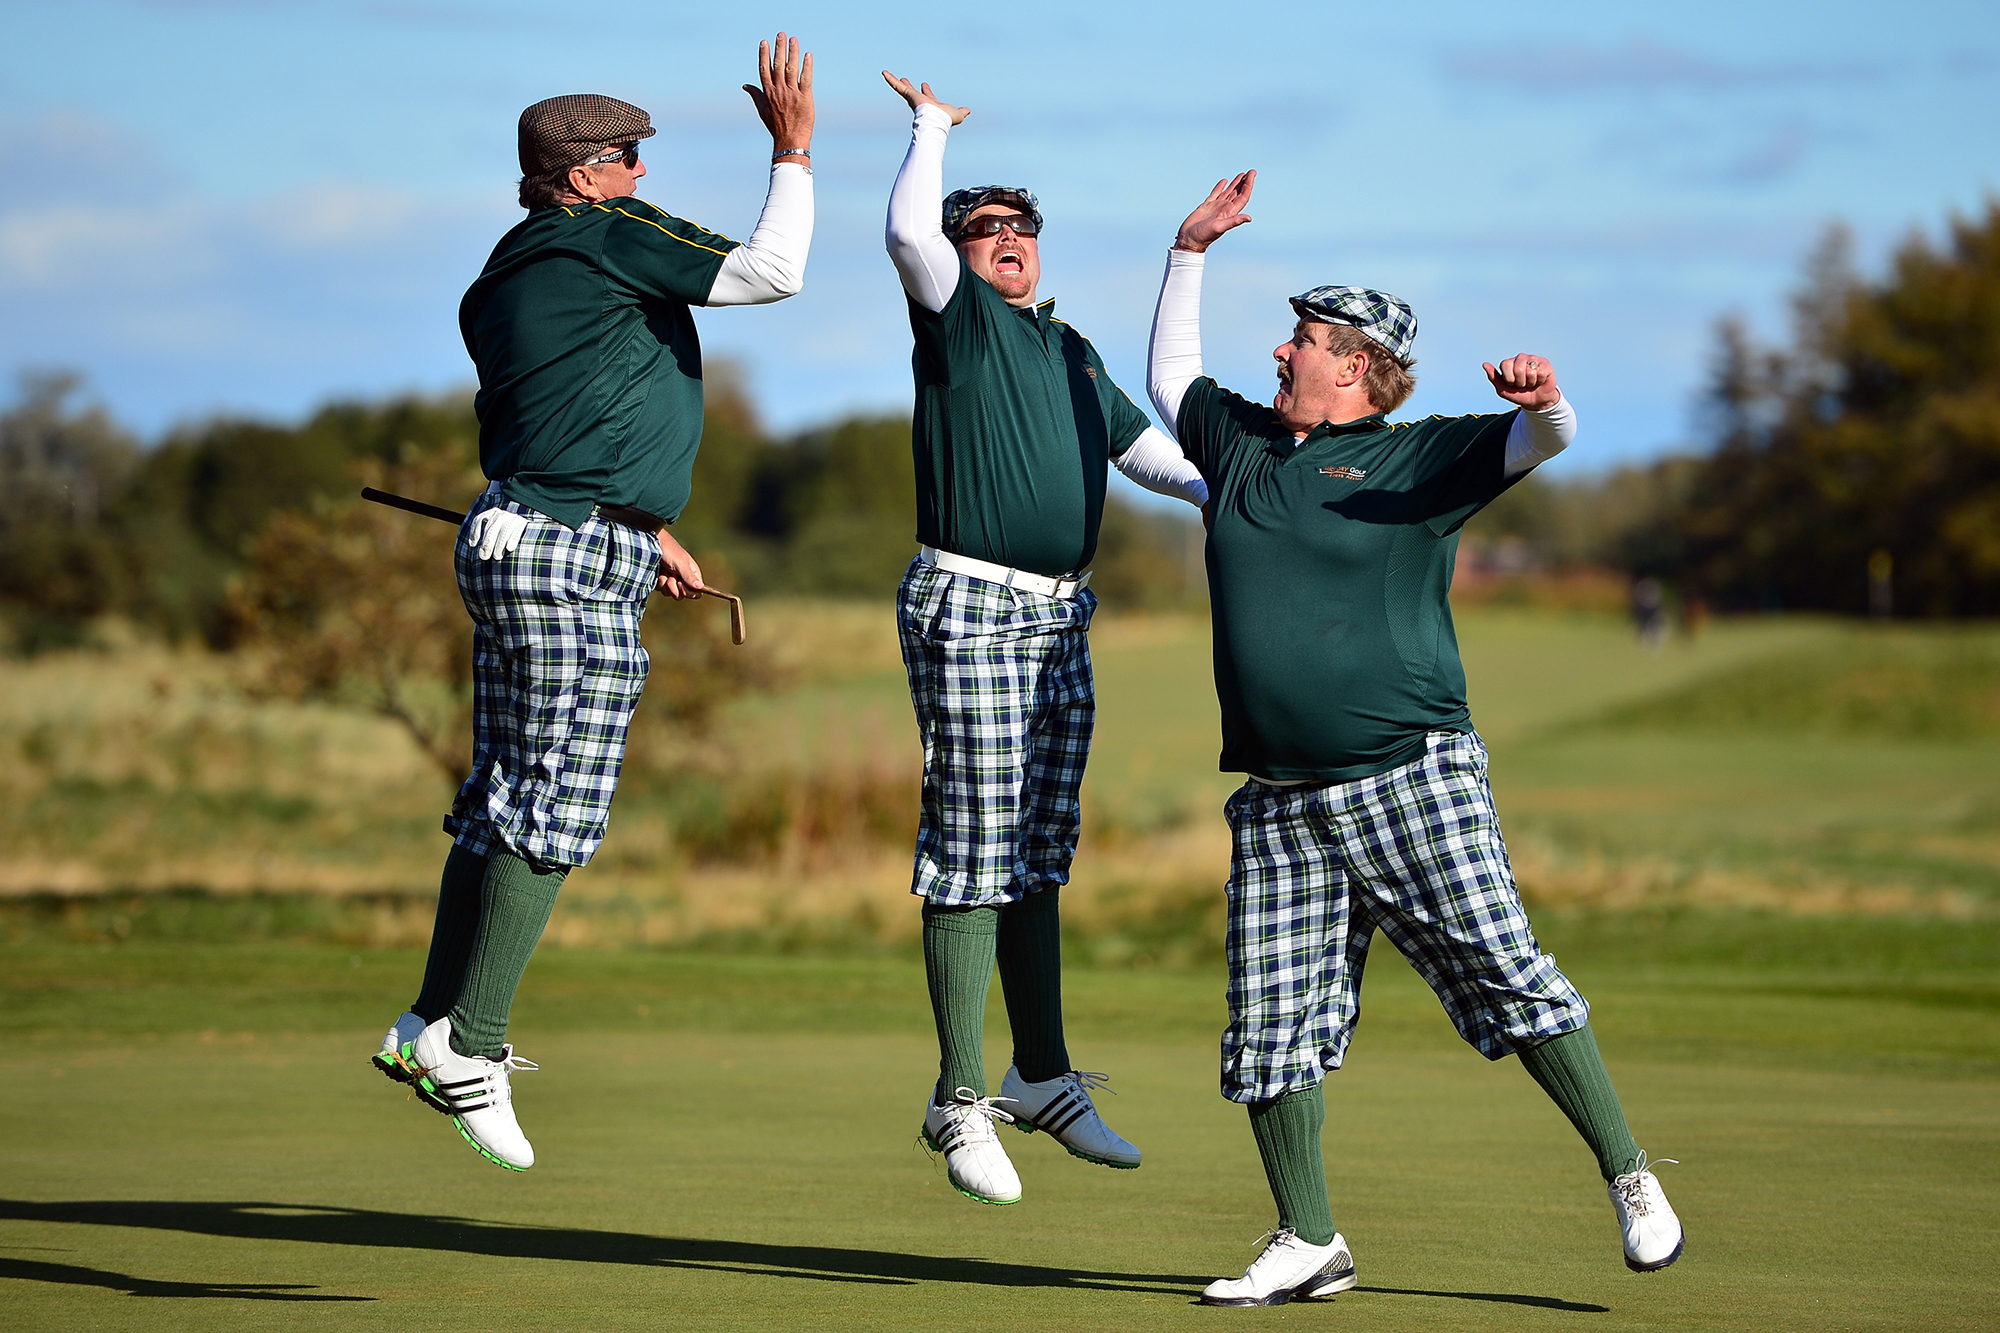 Could golf in Great Britain actually be on the upsurge in 2015? (Photo: Getty Images)